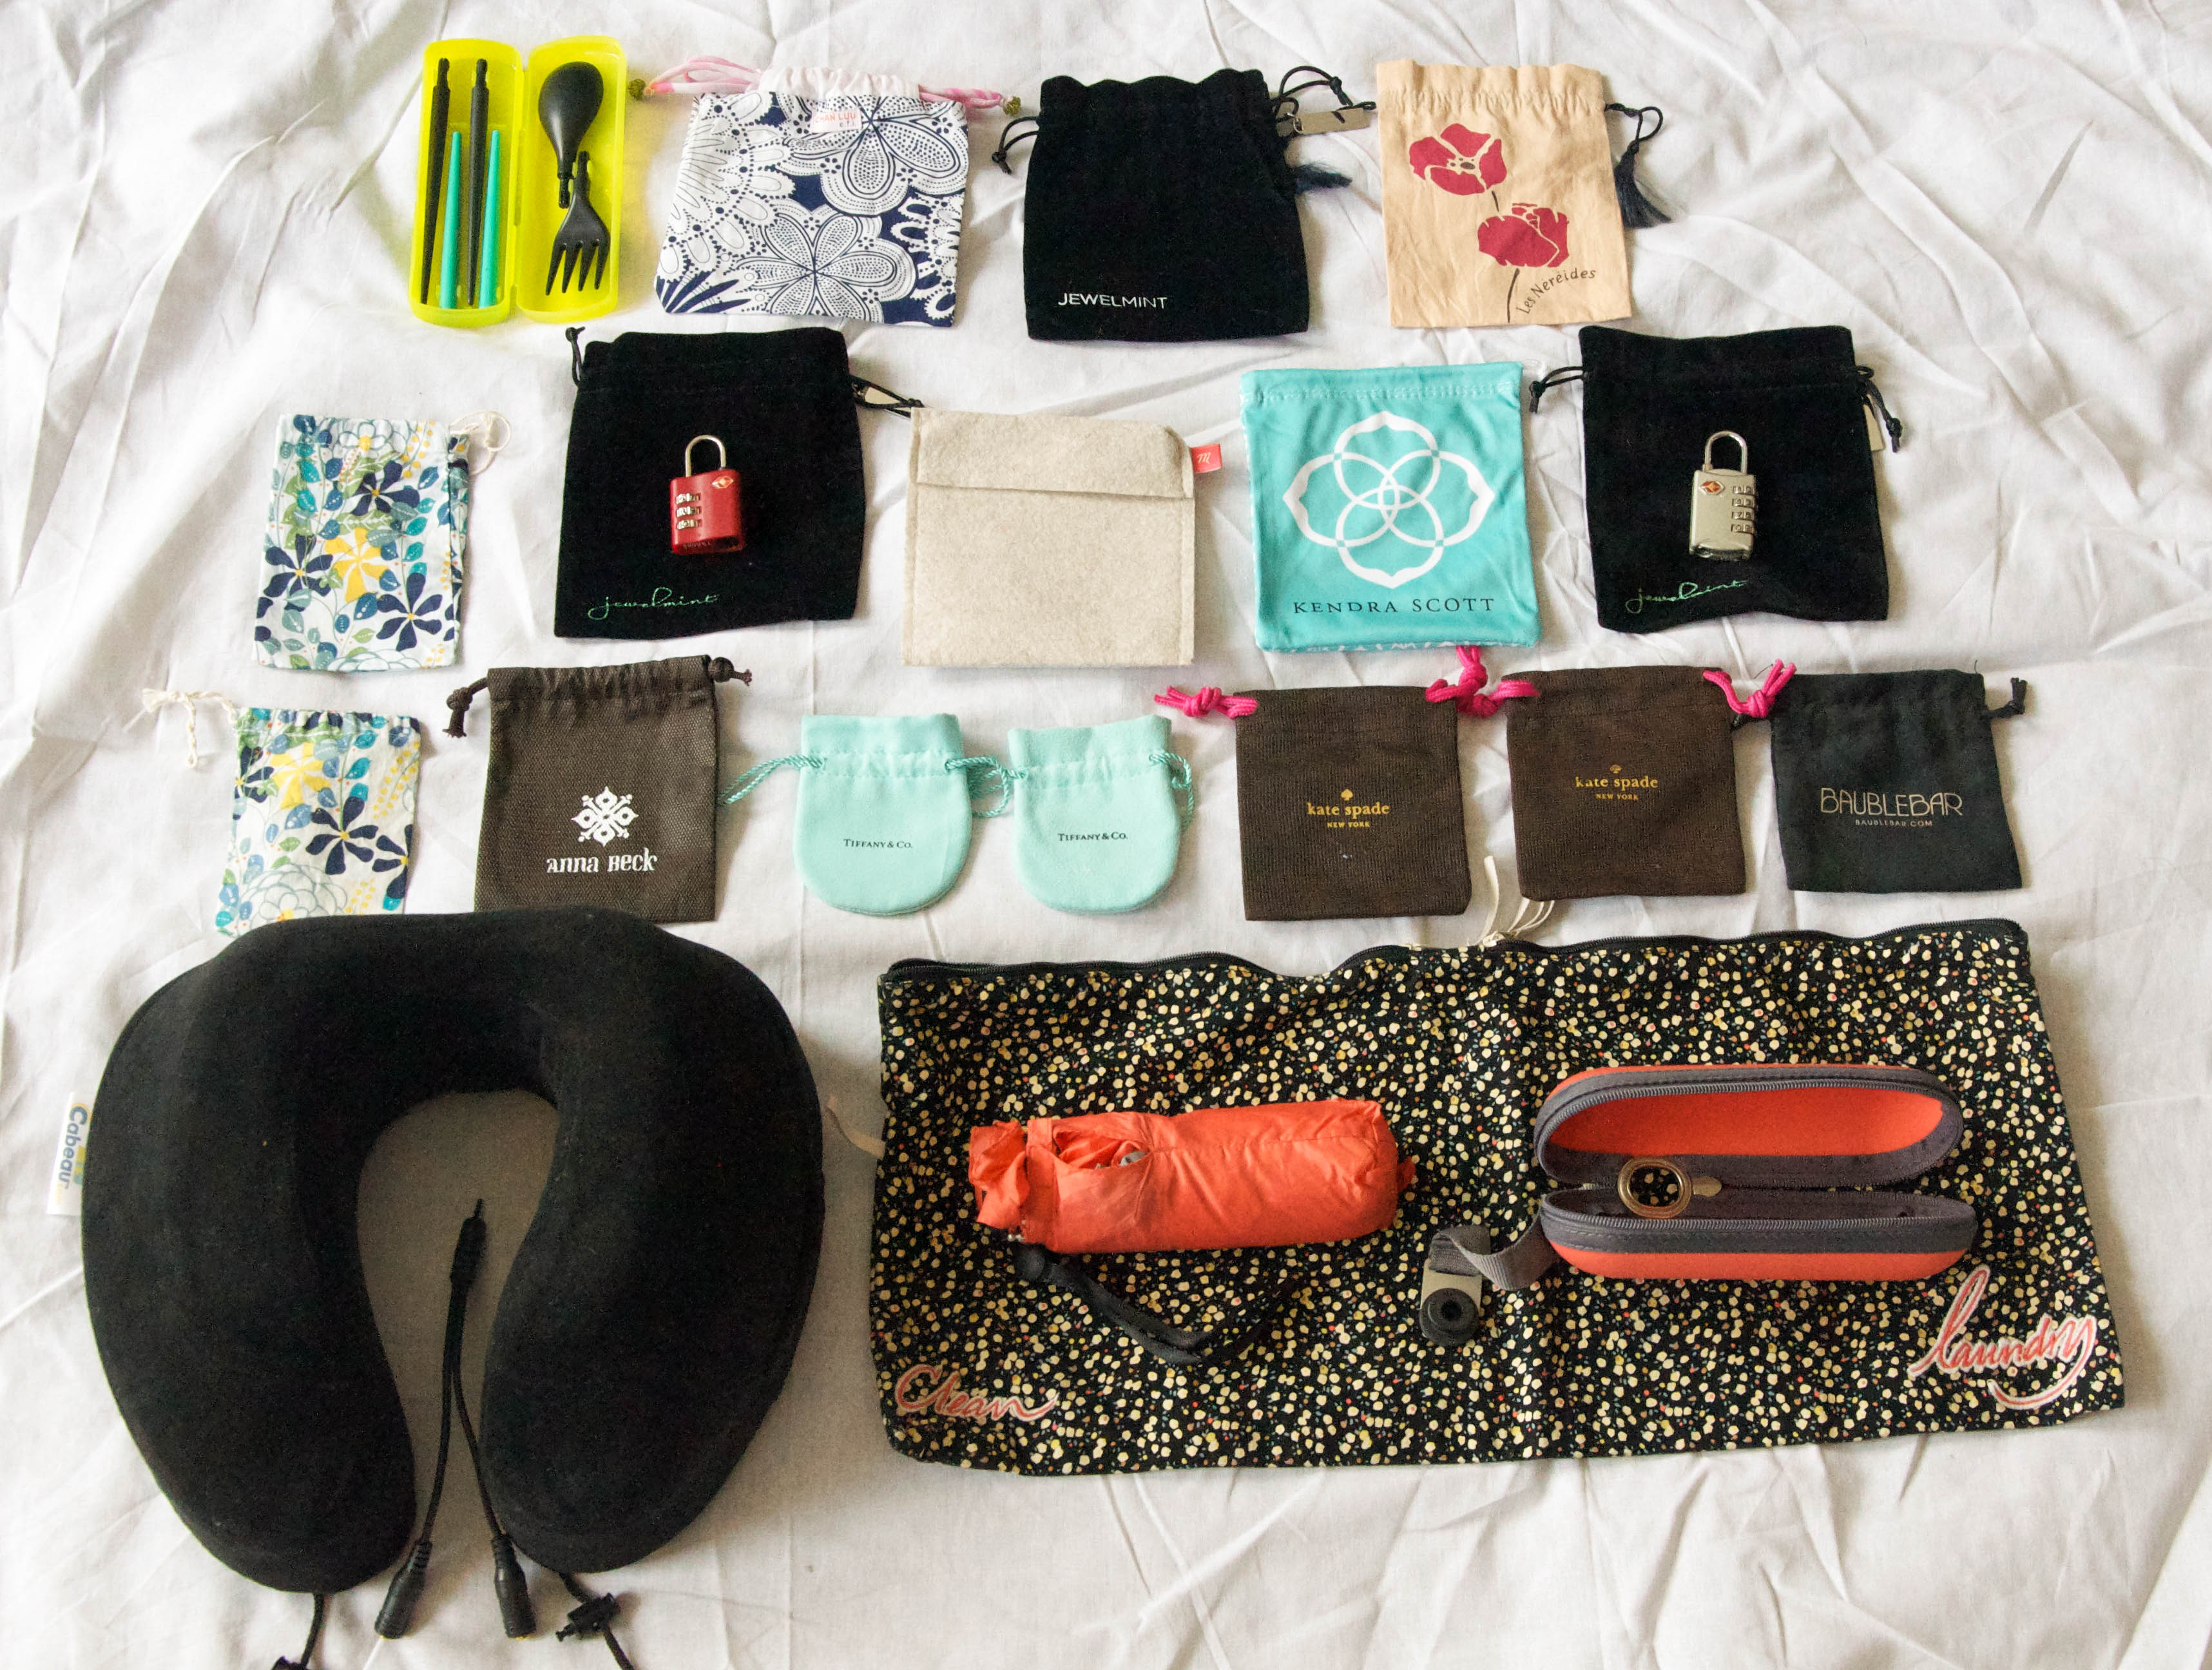 Routine Travel Items